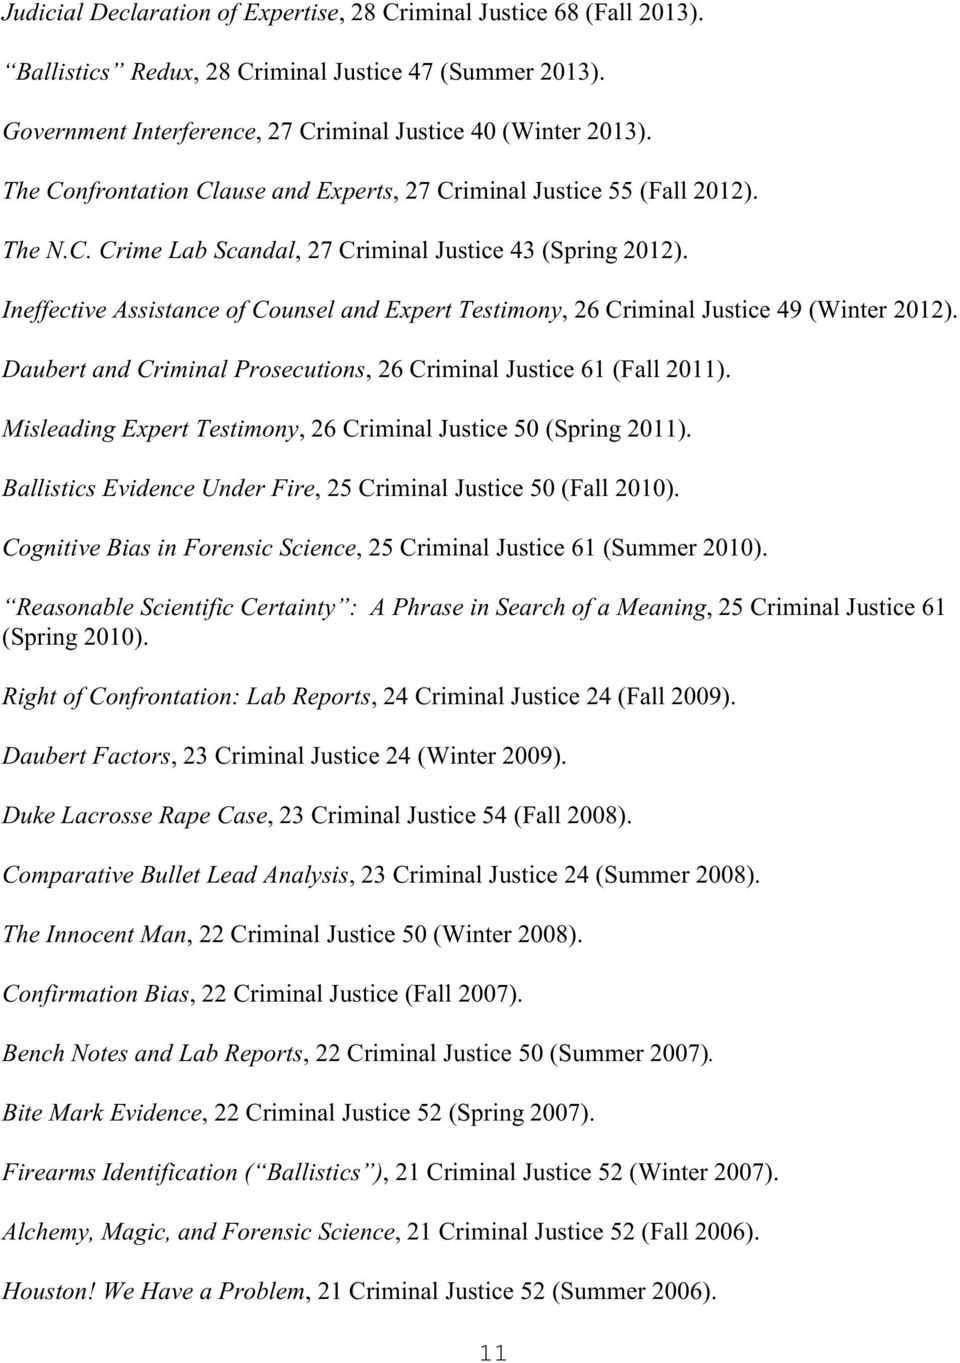 Ineffective Assistance of Counsel and Expert Testimony, 26 Criminal Justice 49 (Winter 2012). Daubert and Criminal Prosecutions, 26 Criminal Justice 61 (Fall 2011).